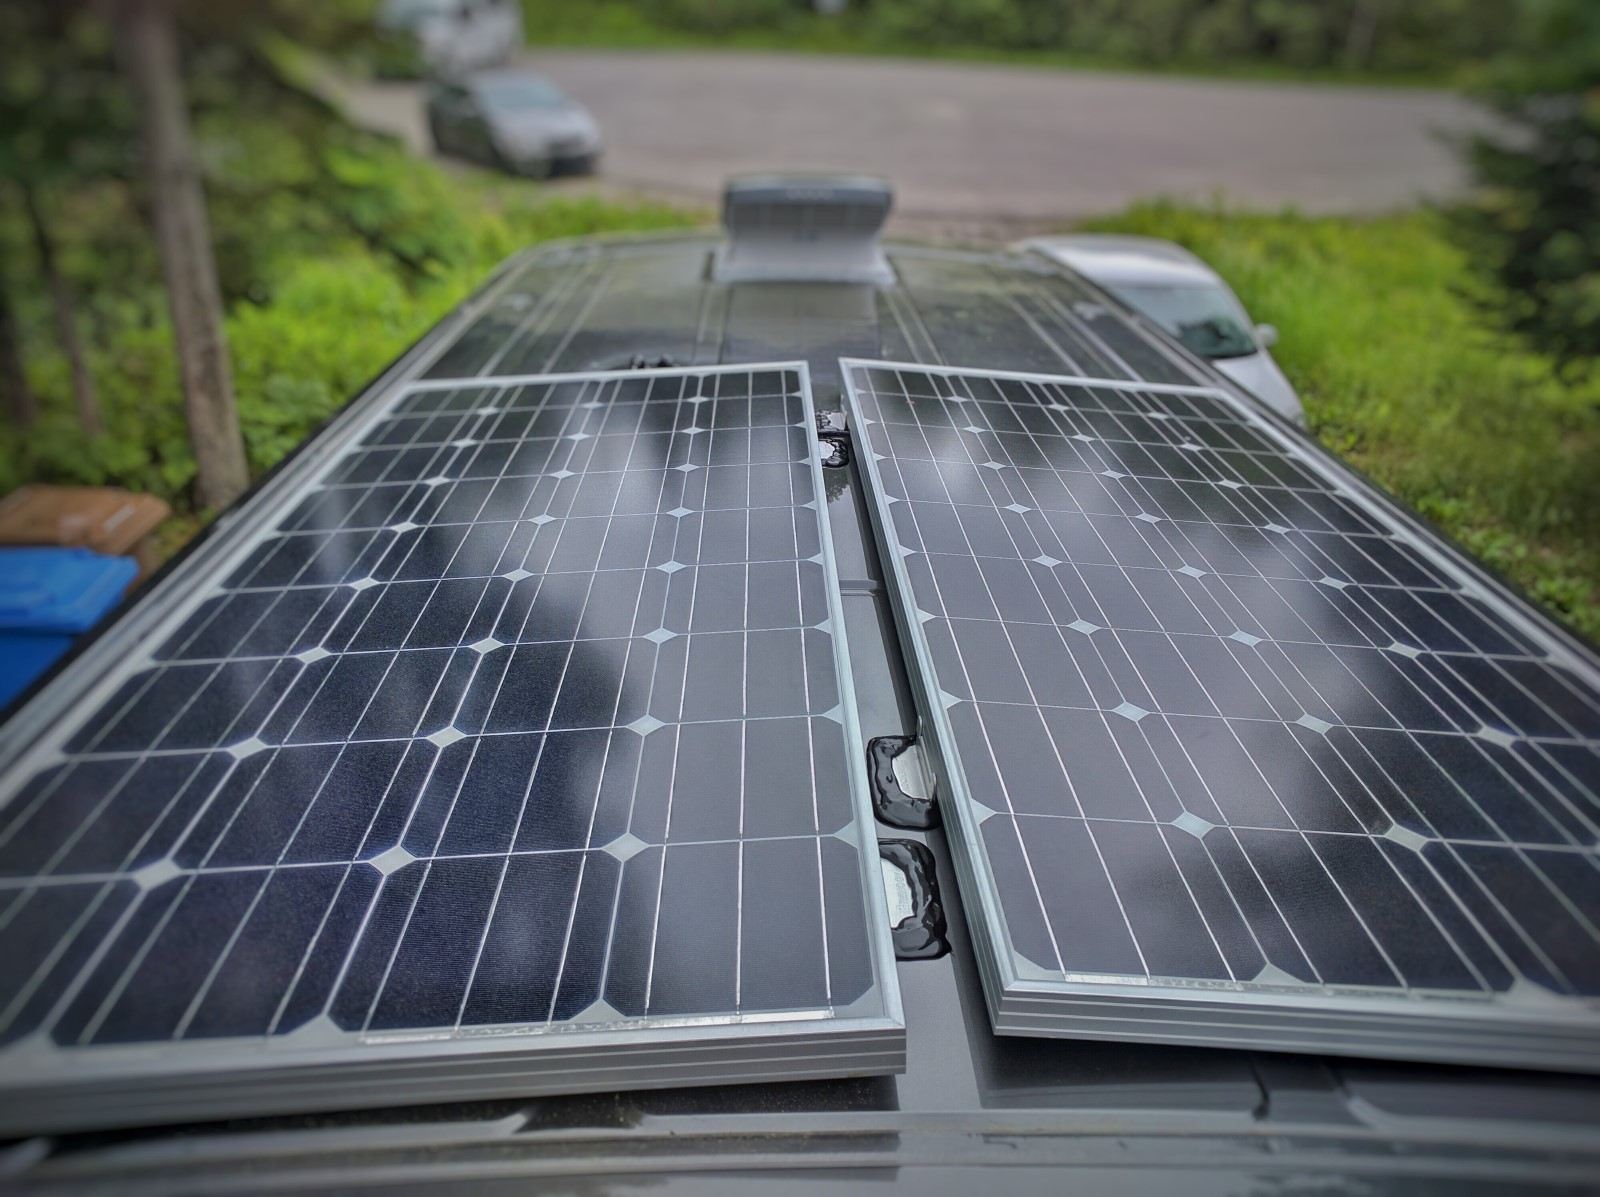 hight resolution of how to install solar panels on a camper van conversion with 3m vhb tape no holes